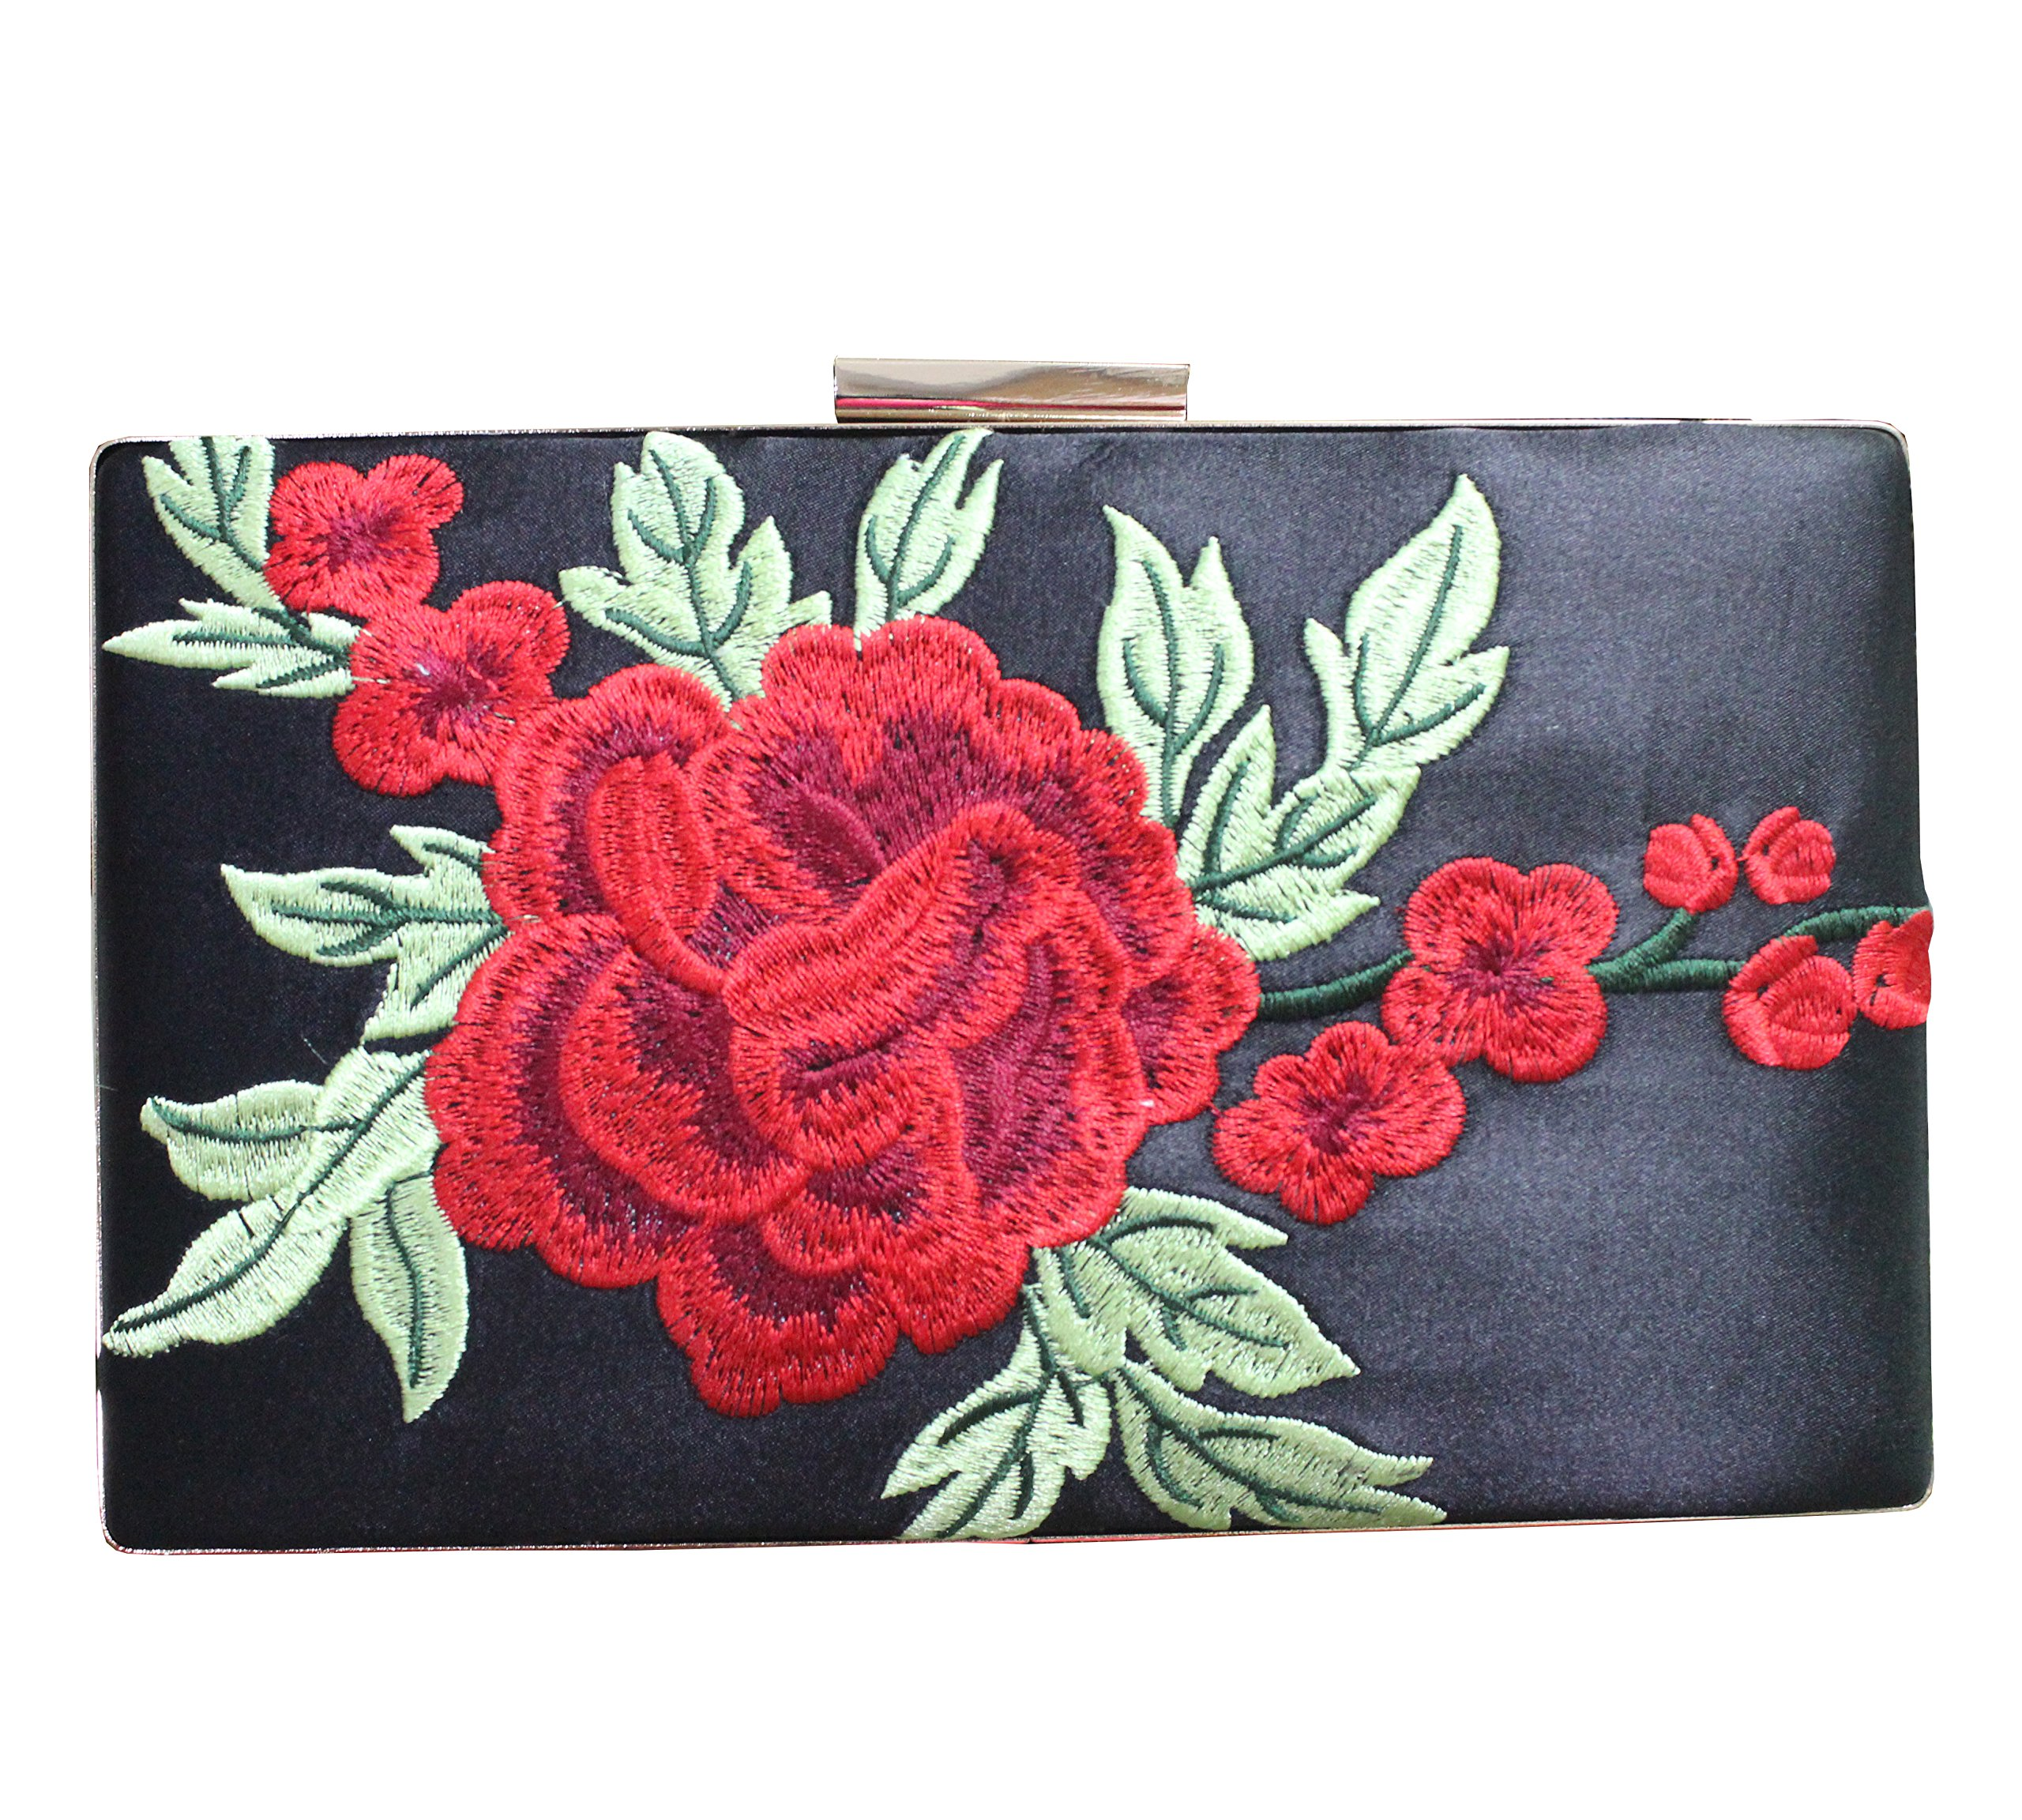 Women's Red Rose Floral Embroidered Satin Evening Clutch Vintage Metal Clasp Formal Purse(Black)